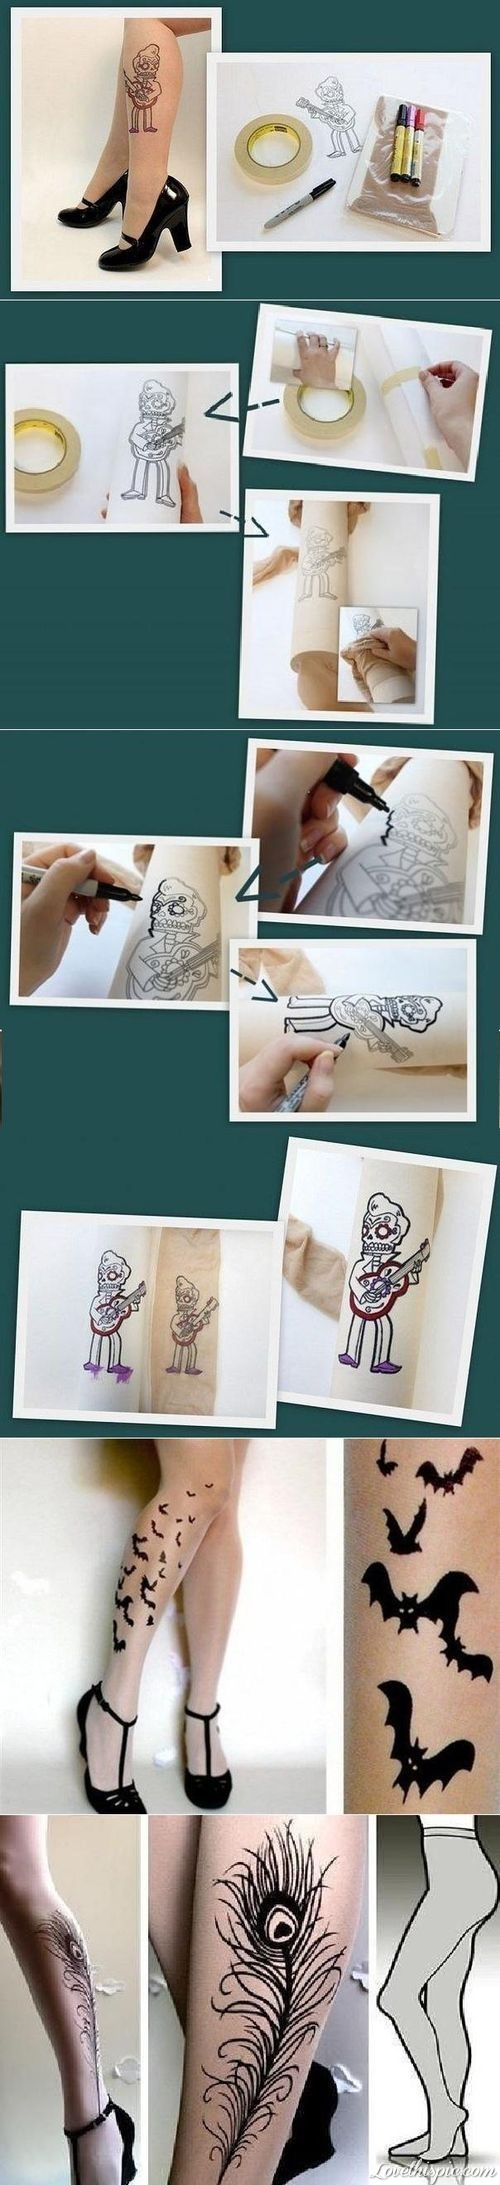 DIY Pantyhose Tattoo  diy crafts easy crafts easy diy diy tattoo. diy clothes craft tattoos. . I already have tattoos on my legs but will try this.